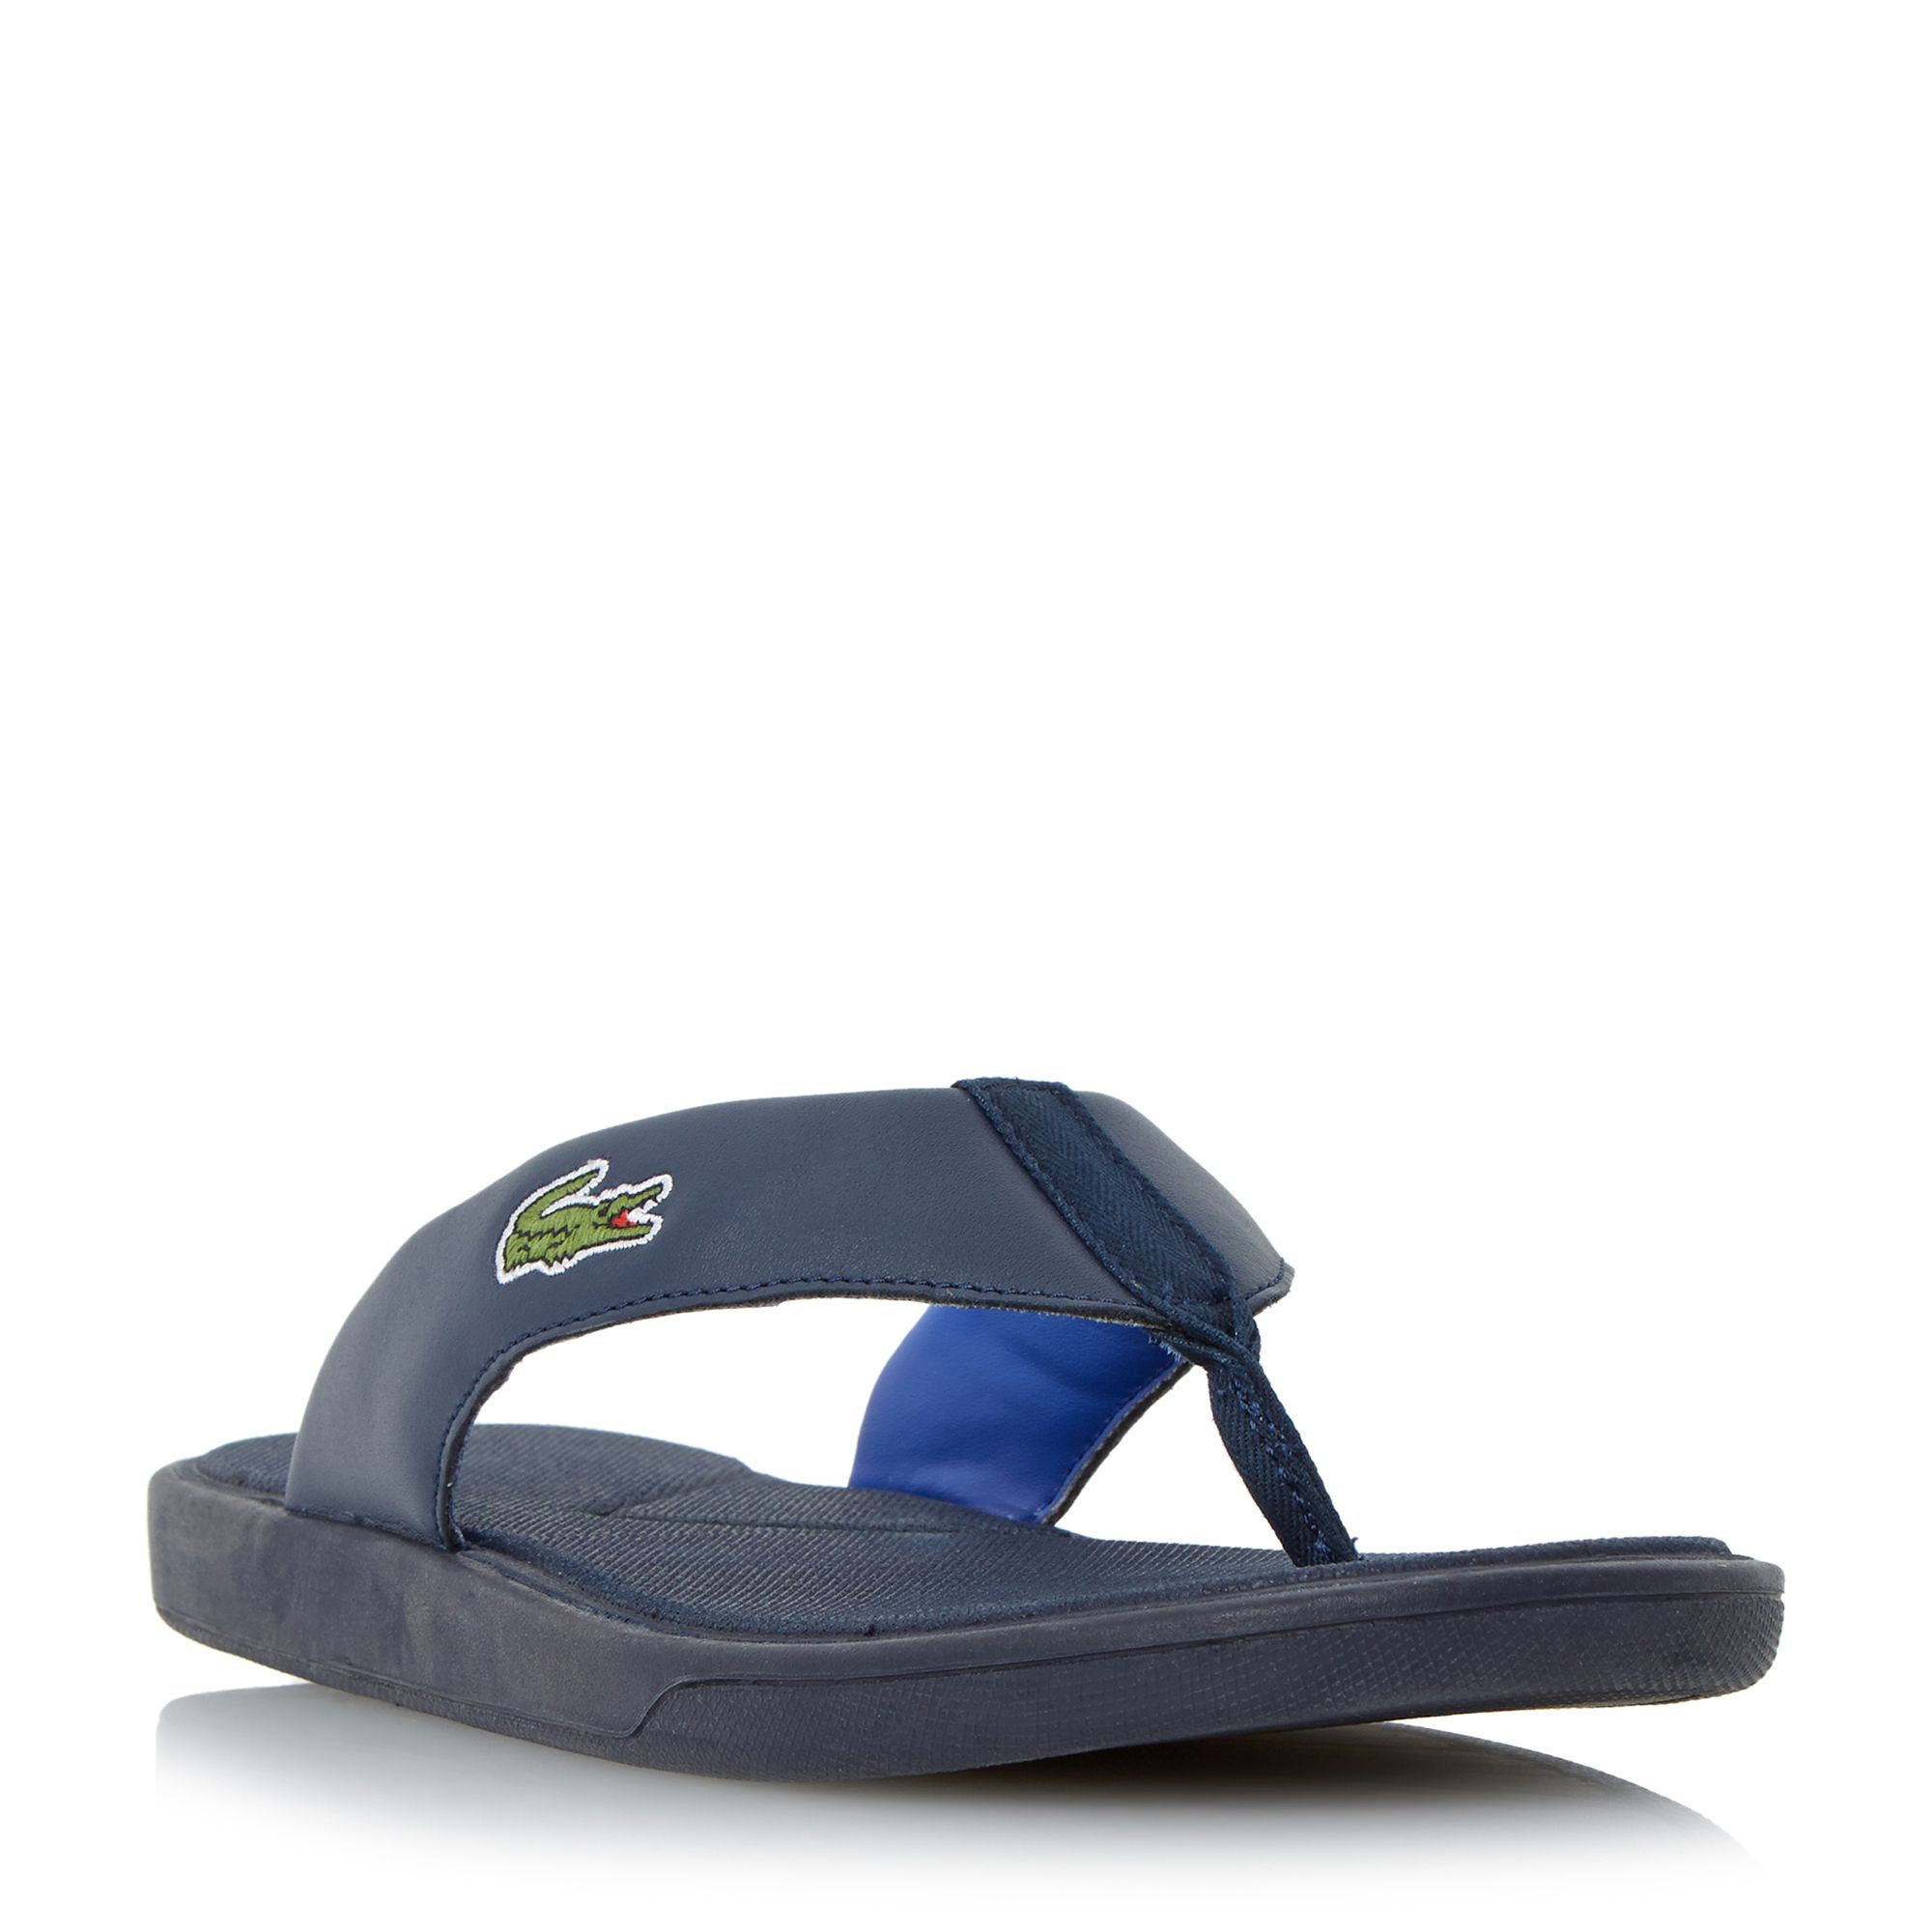 Men's Lacoste L.30 Leather Toe Post Flip Flops, Blue